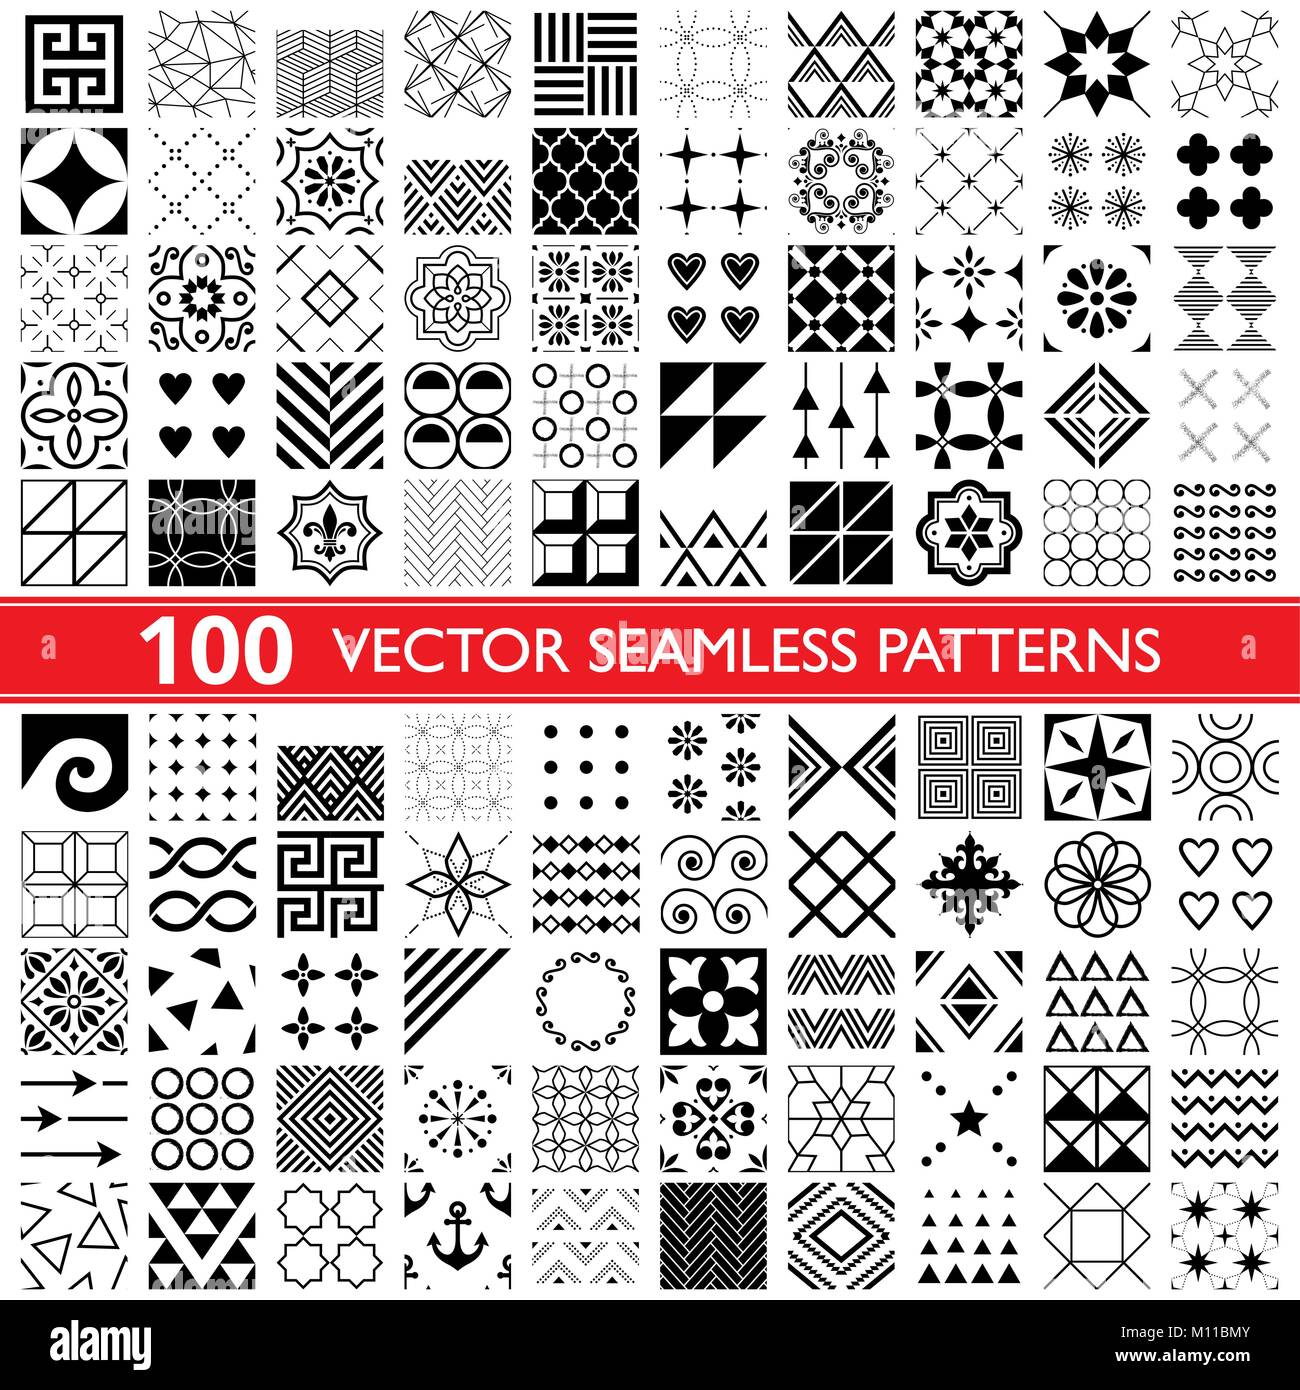 100 vector seamless pattern collection, geometric universal patterns, tiles and wallpapers - big pack - Stock Vector